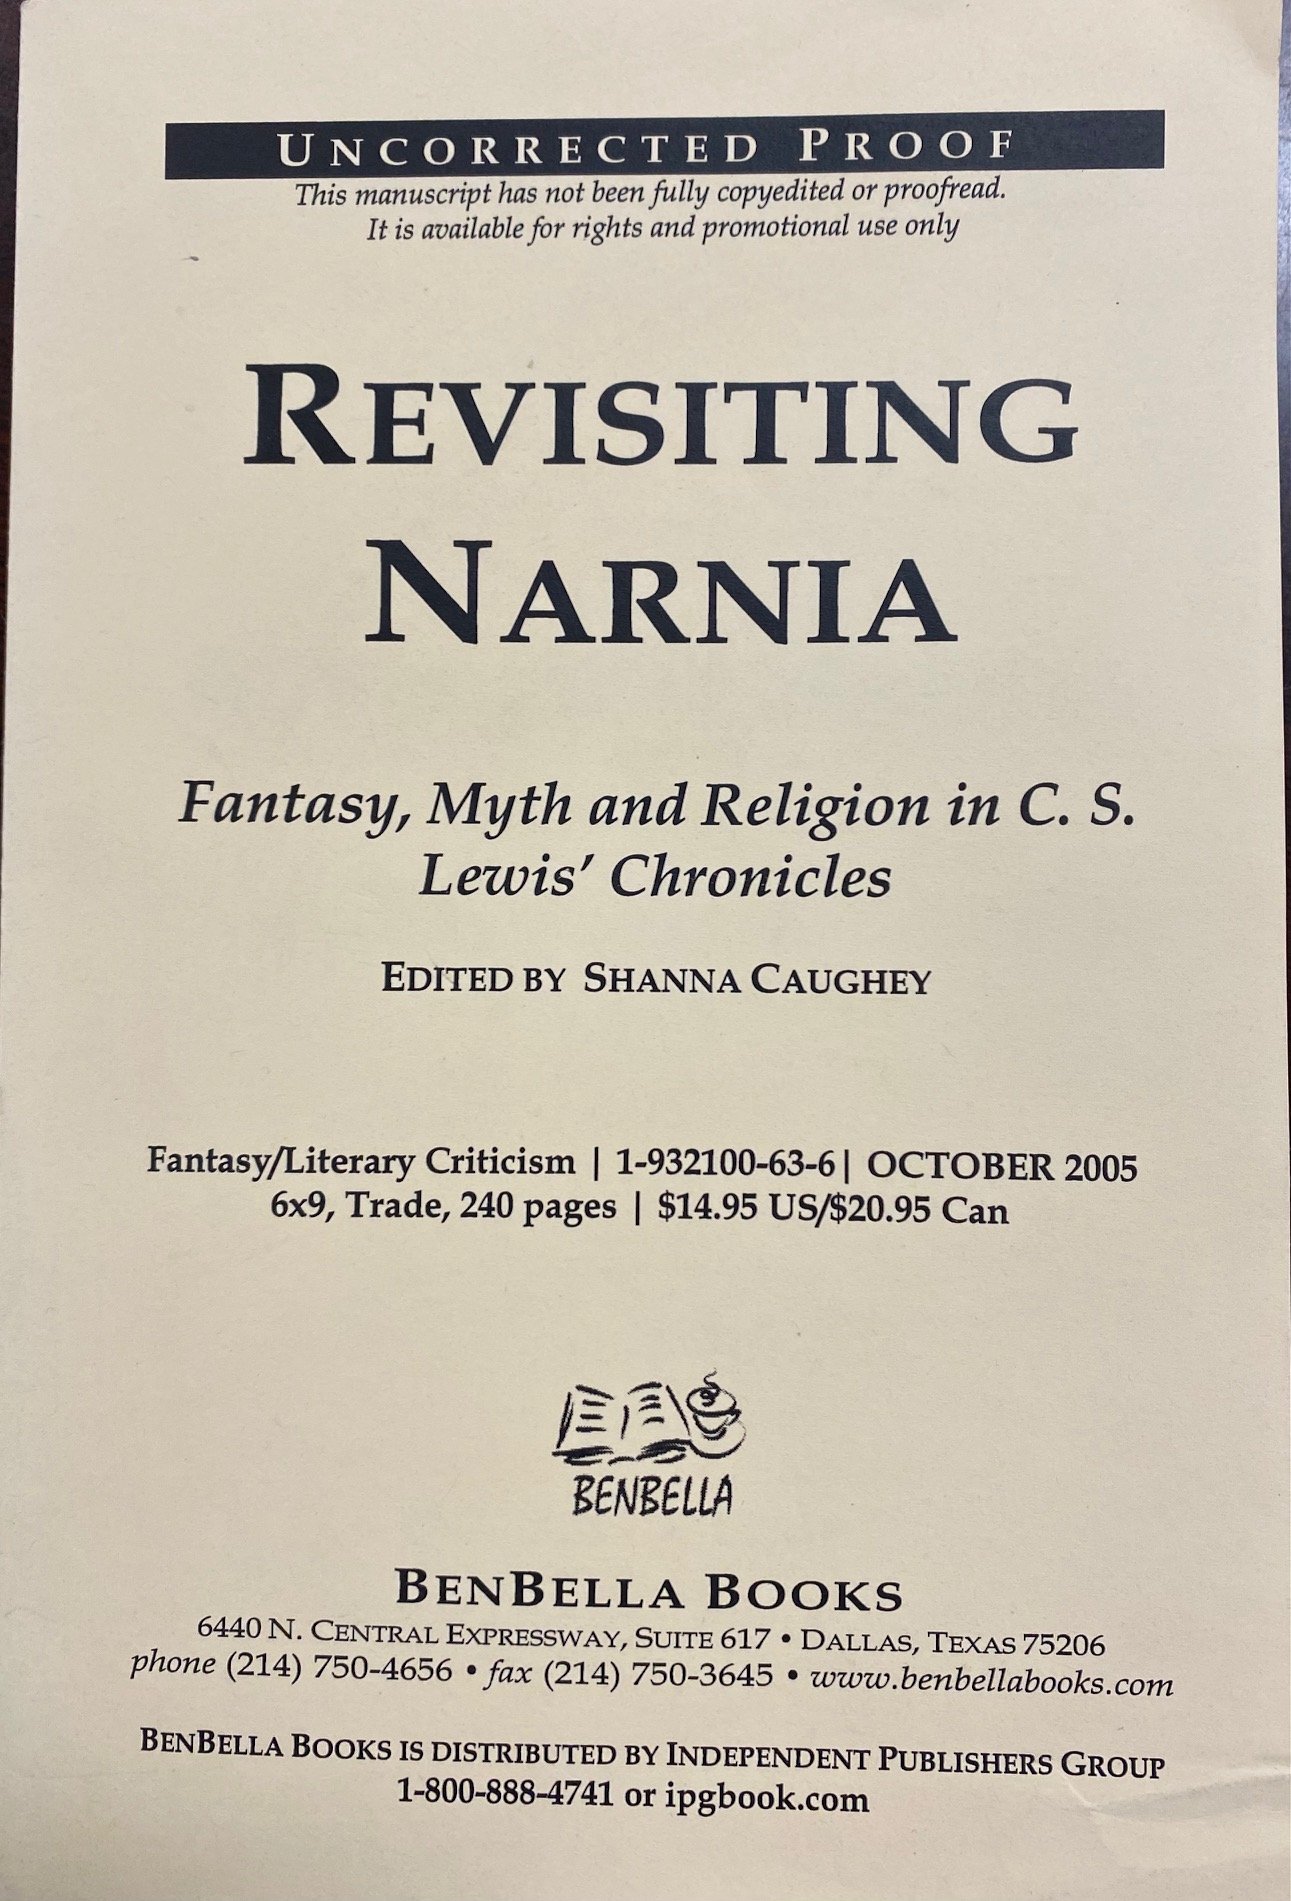 Image for Revisiting Narnia: Fantasy, Myth And Religion in C. S. Lewis' Chronicles (Uncorrected Proof)